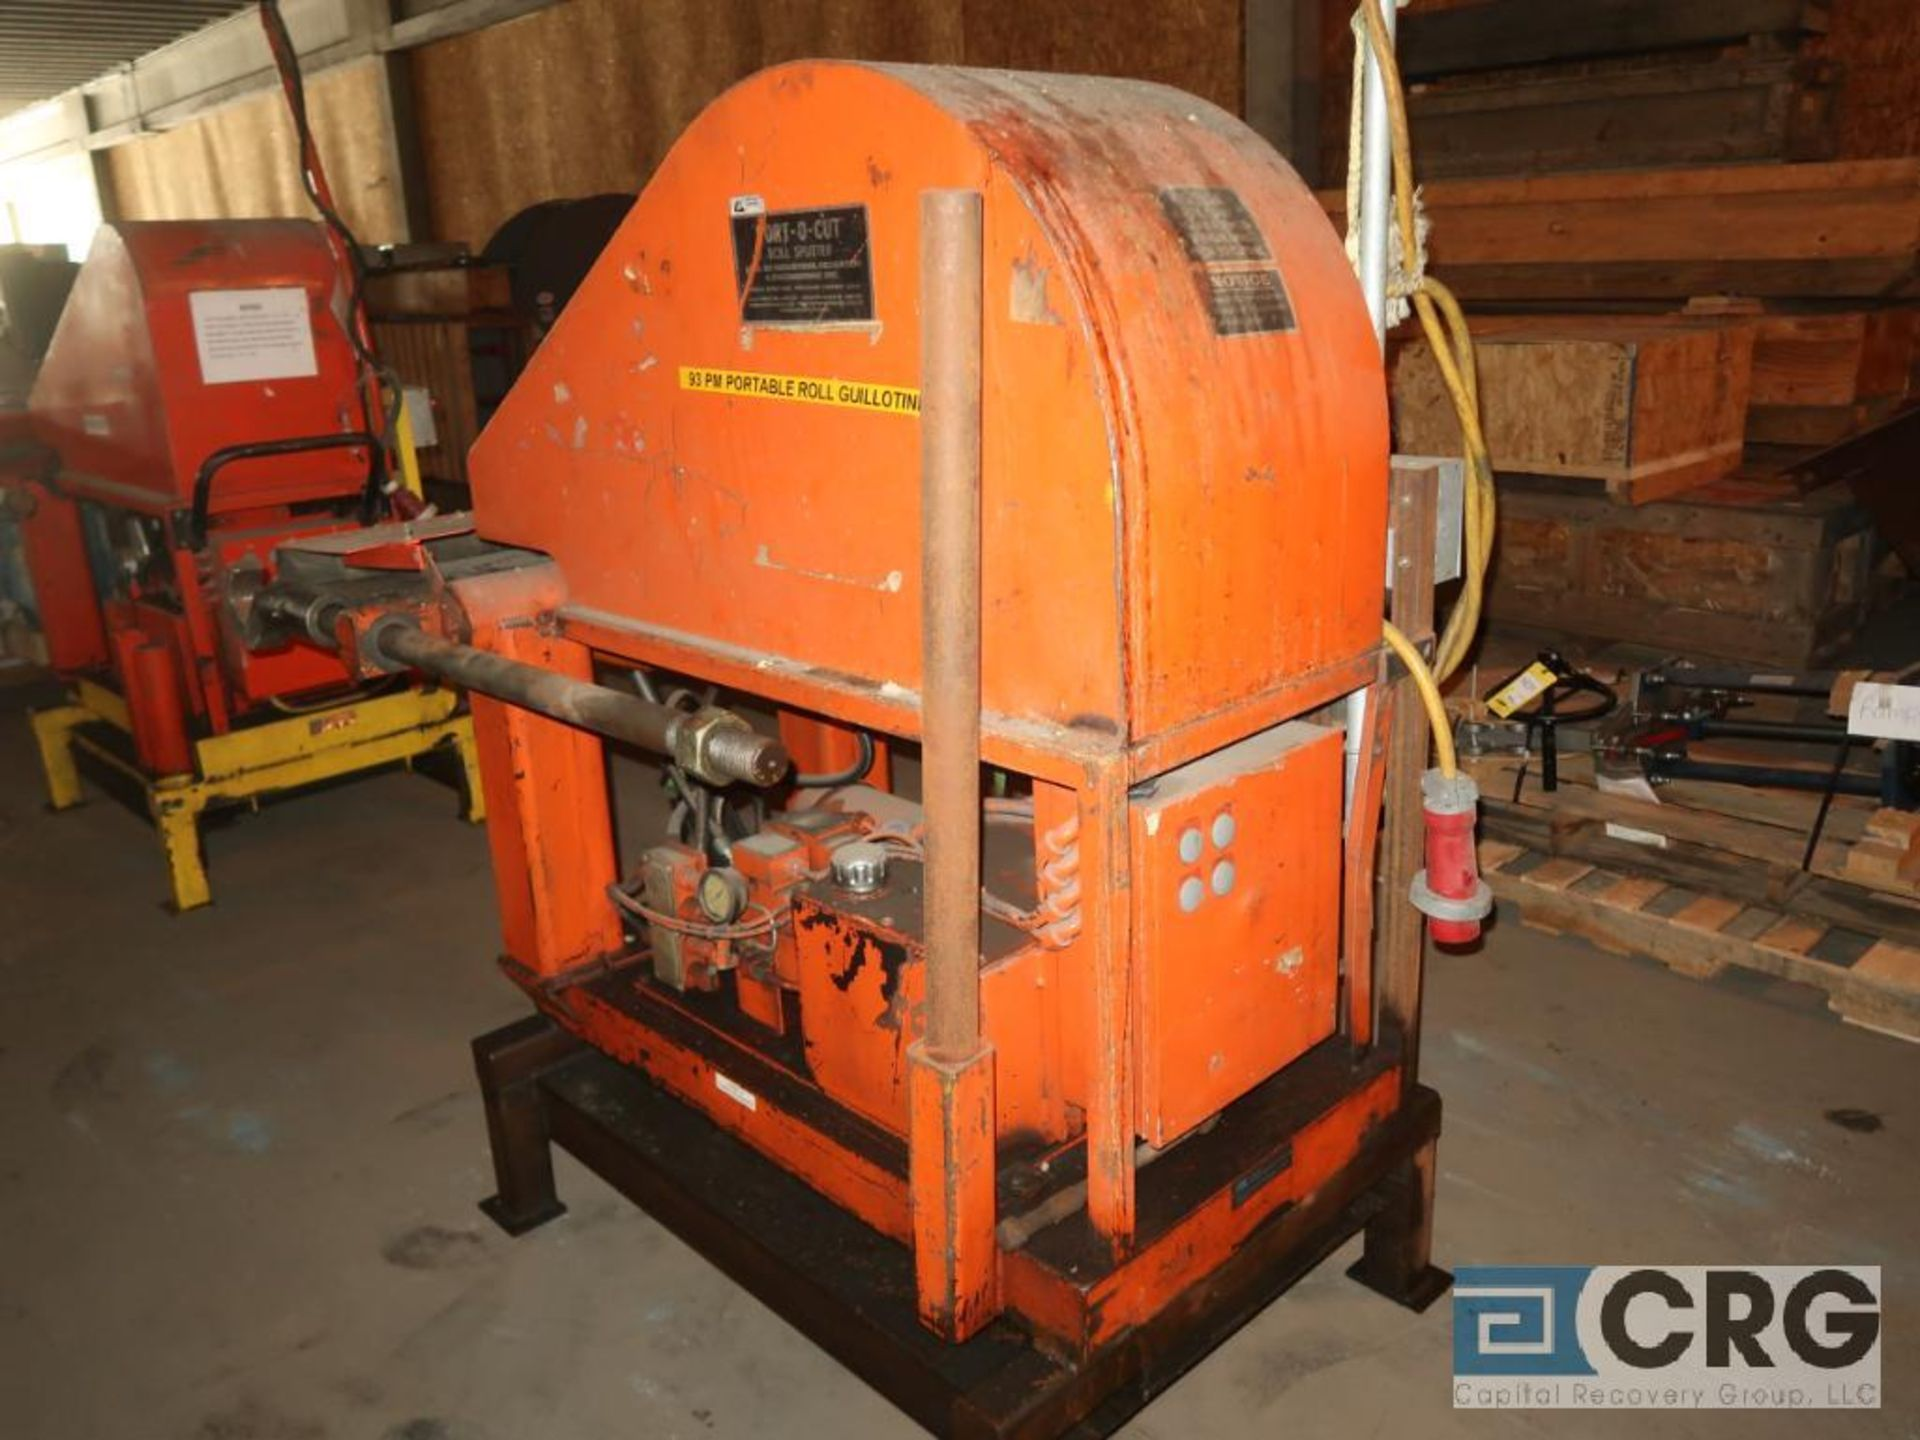 IRE Port O Cut roll guillotine, 36 in. blade, s/n 85562 (Off Site Warehouse) - Image 3 of 3